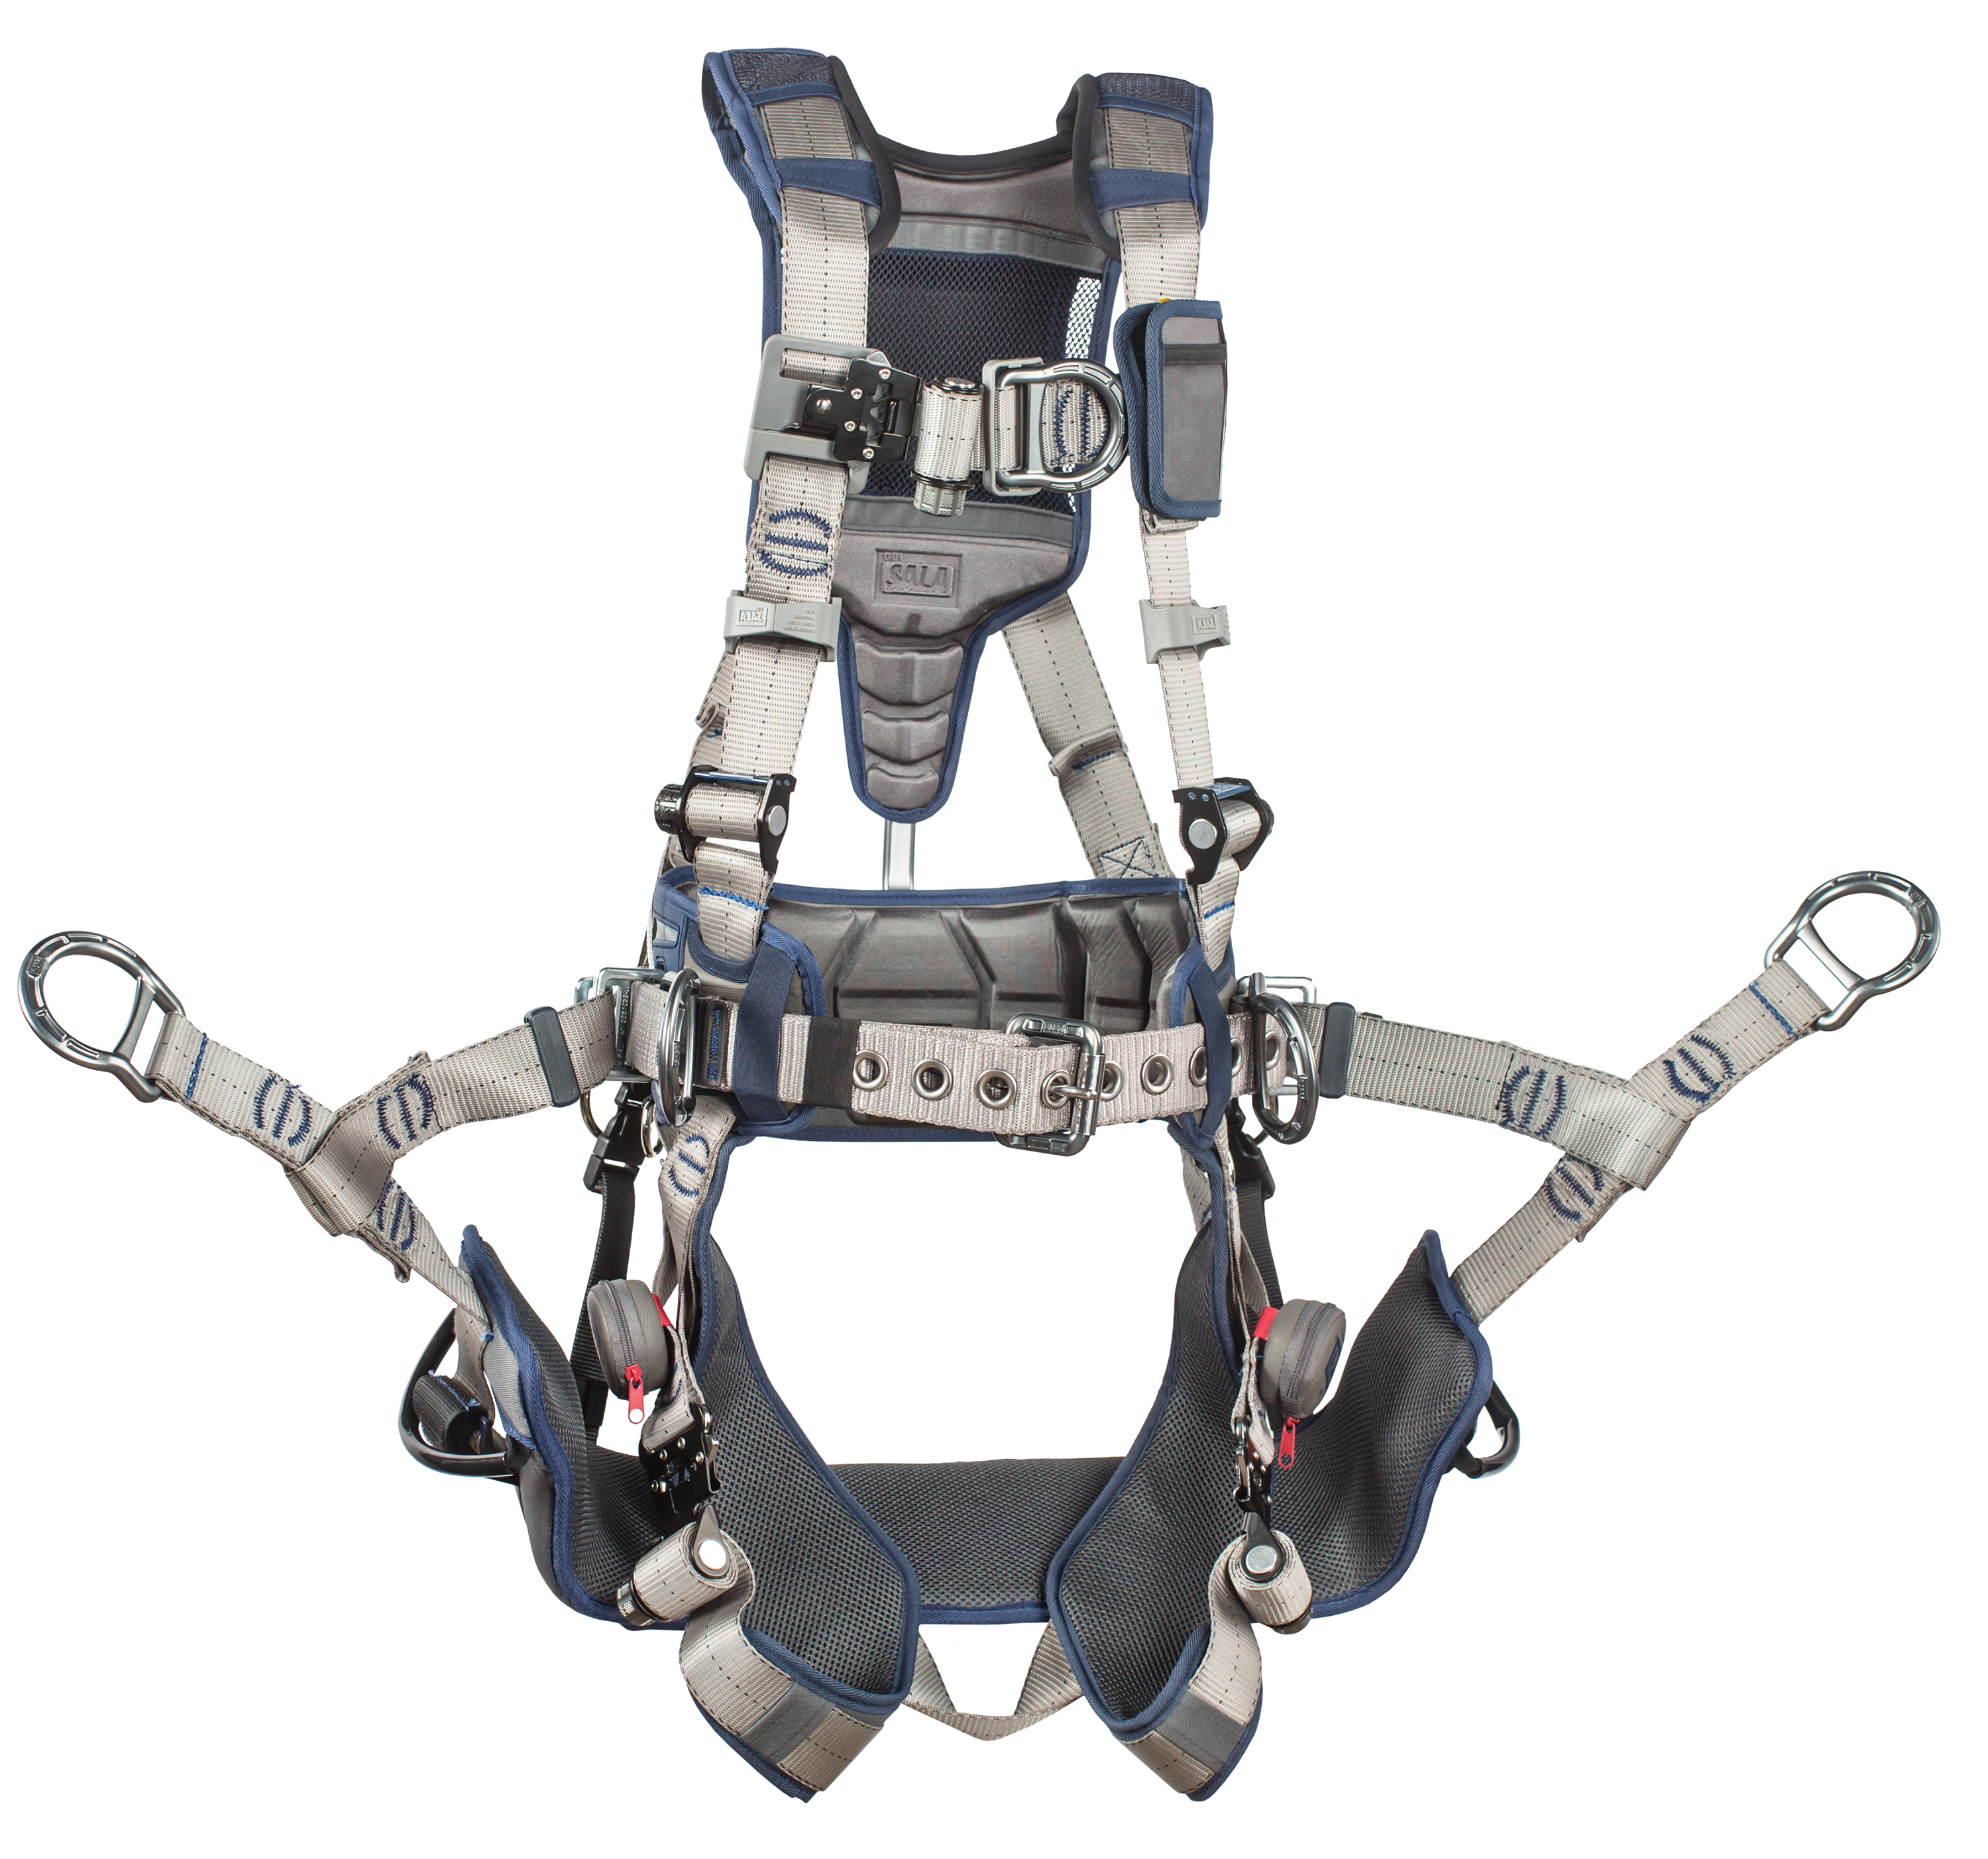 3M | DBI-SALA ExoFit STRATA Tower Climbing Harness, Triple Action Chest and  Leg Buckles, Chest D-Ring